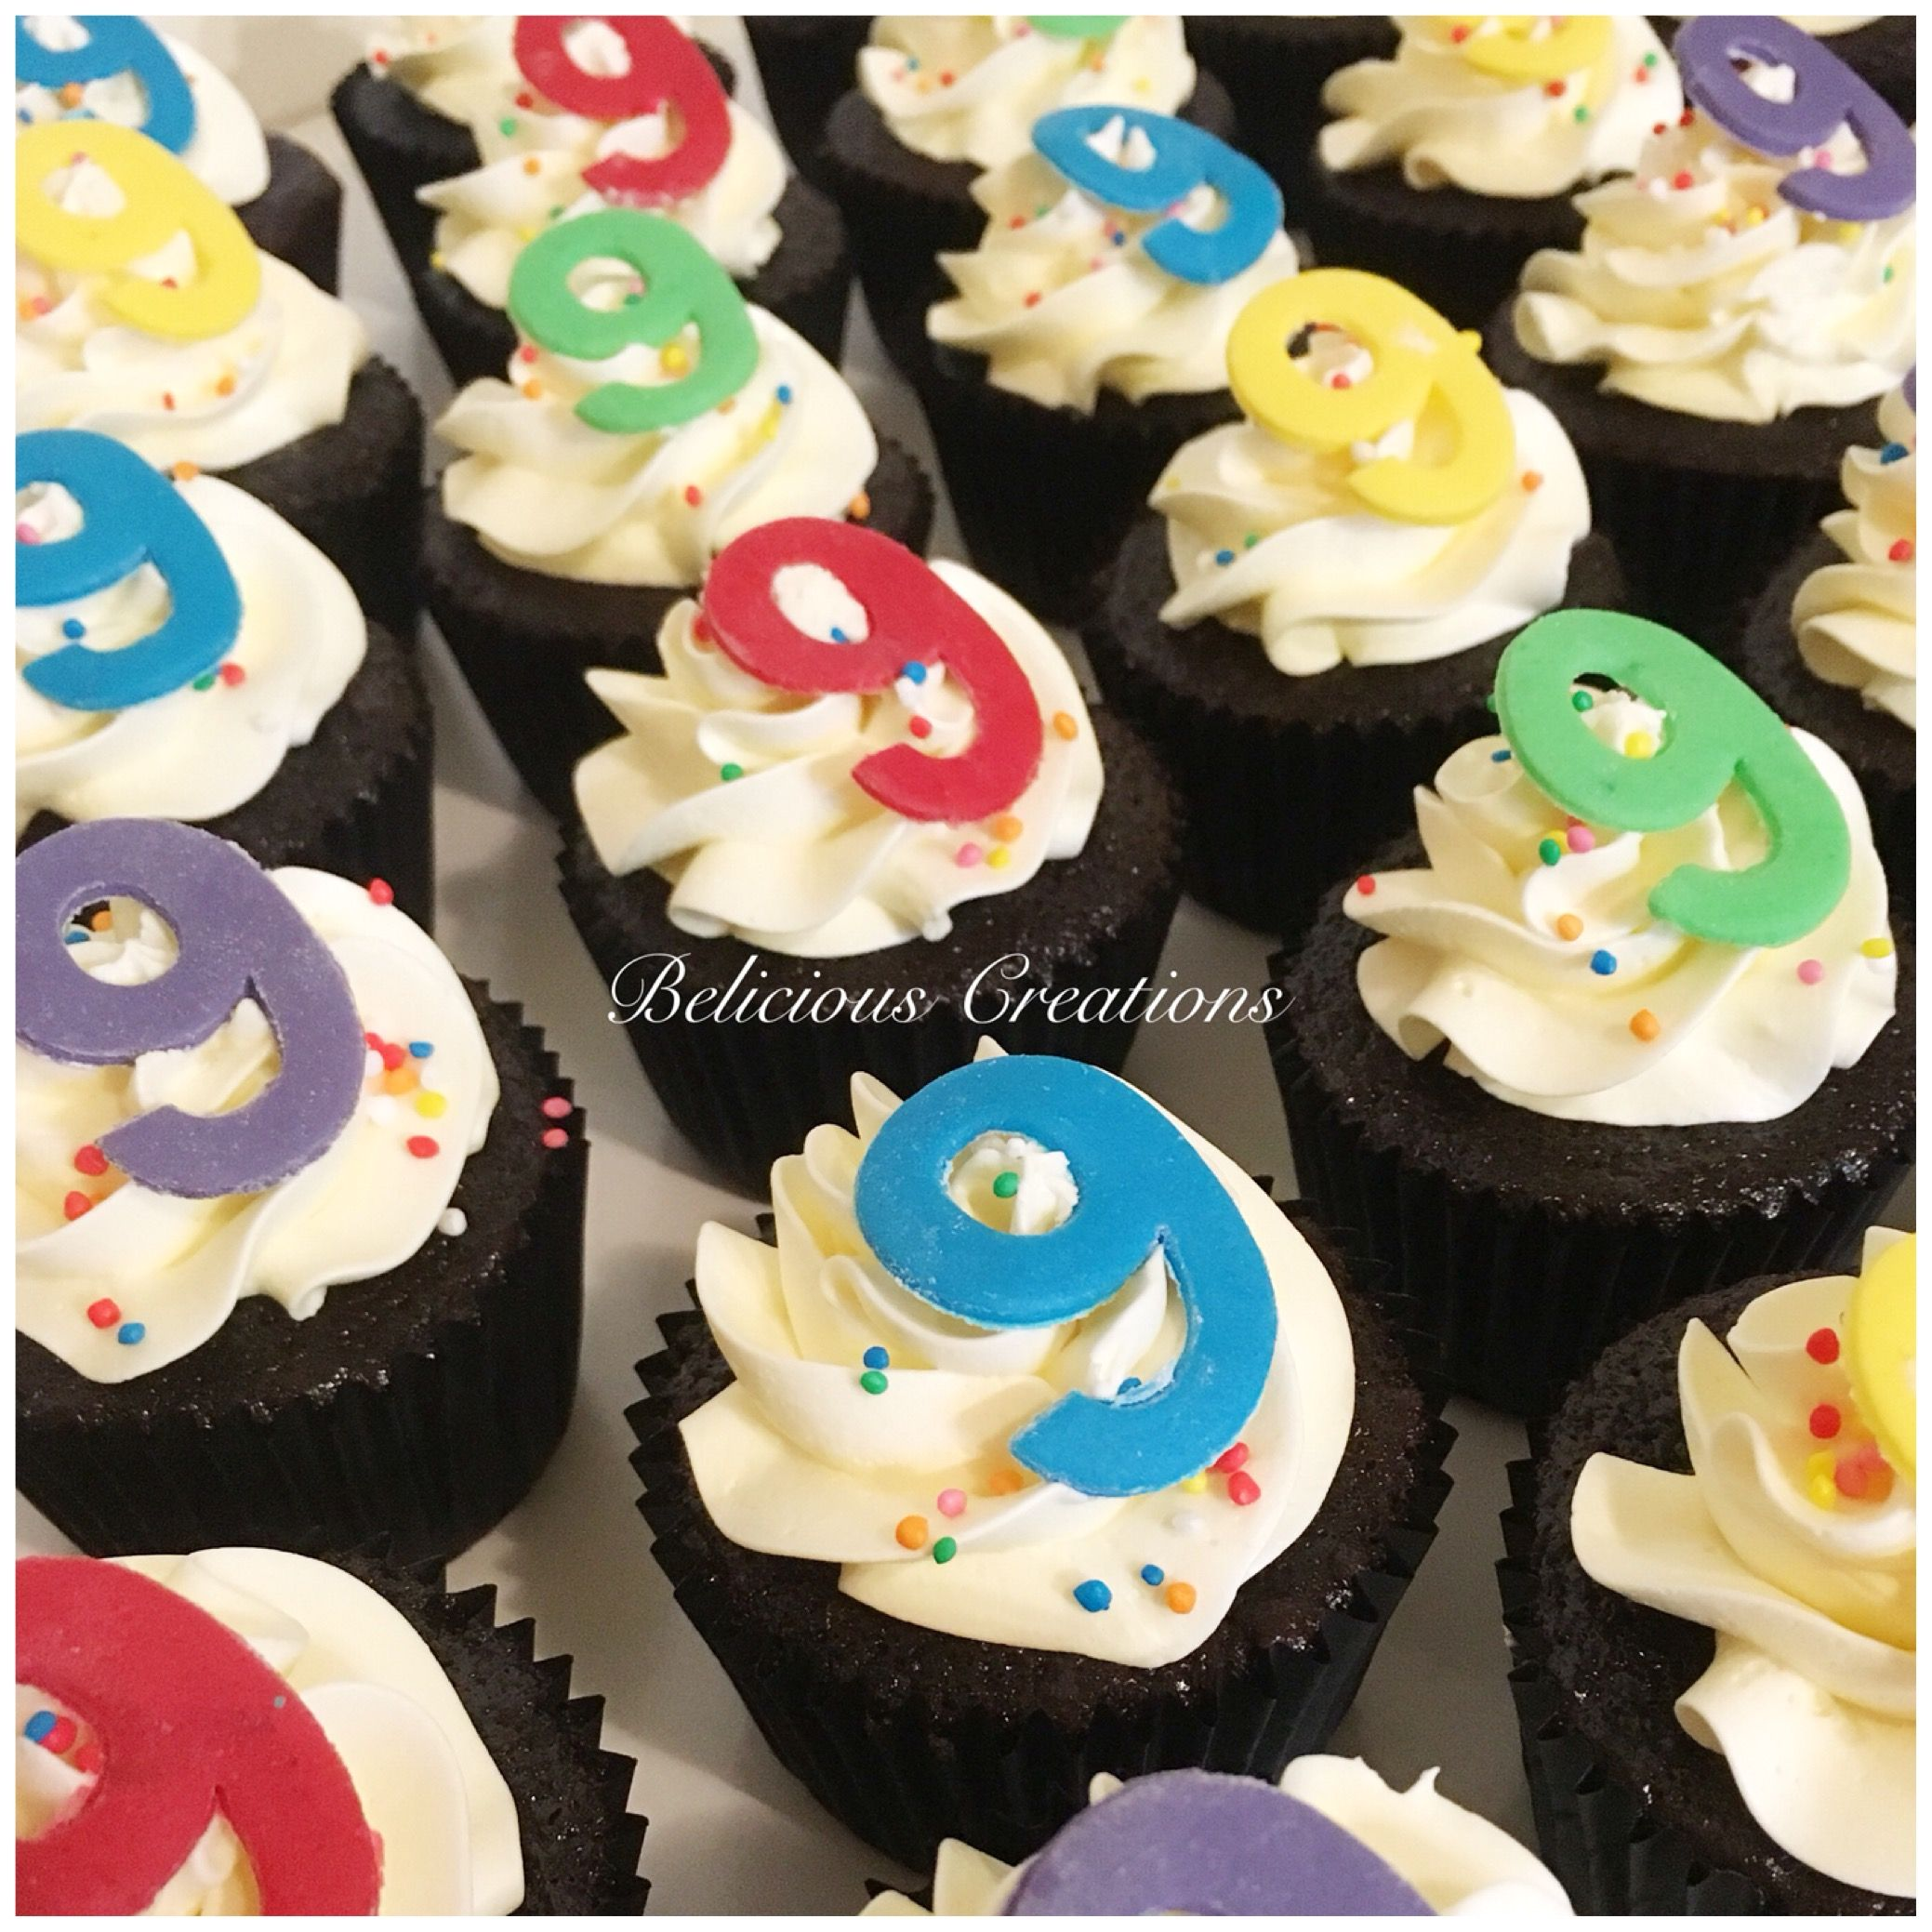 Sprinkled Number 9 Cupcakes To Go With The Hand Drawn Colourful